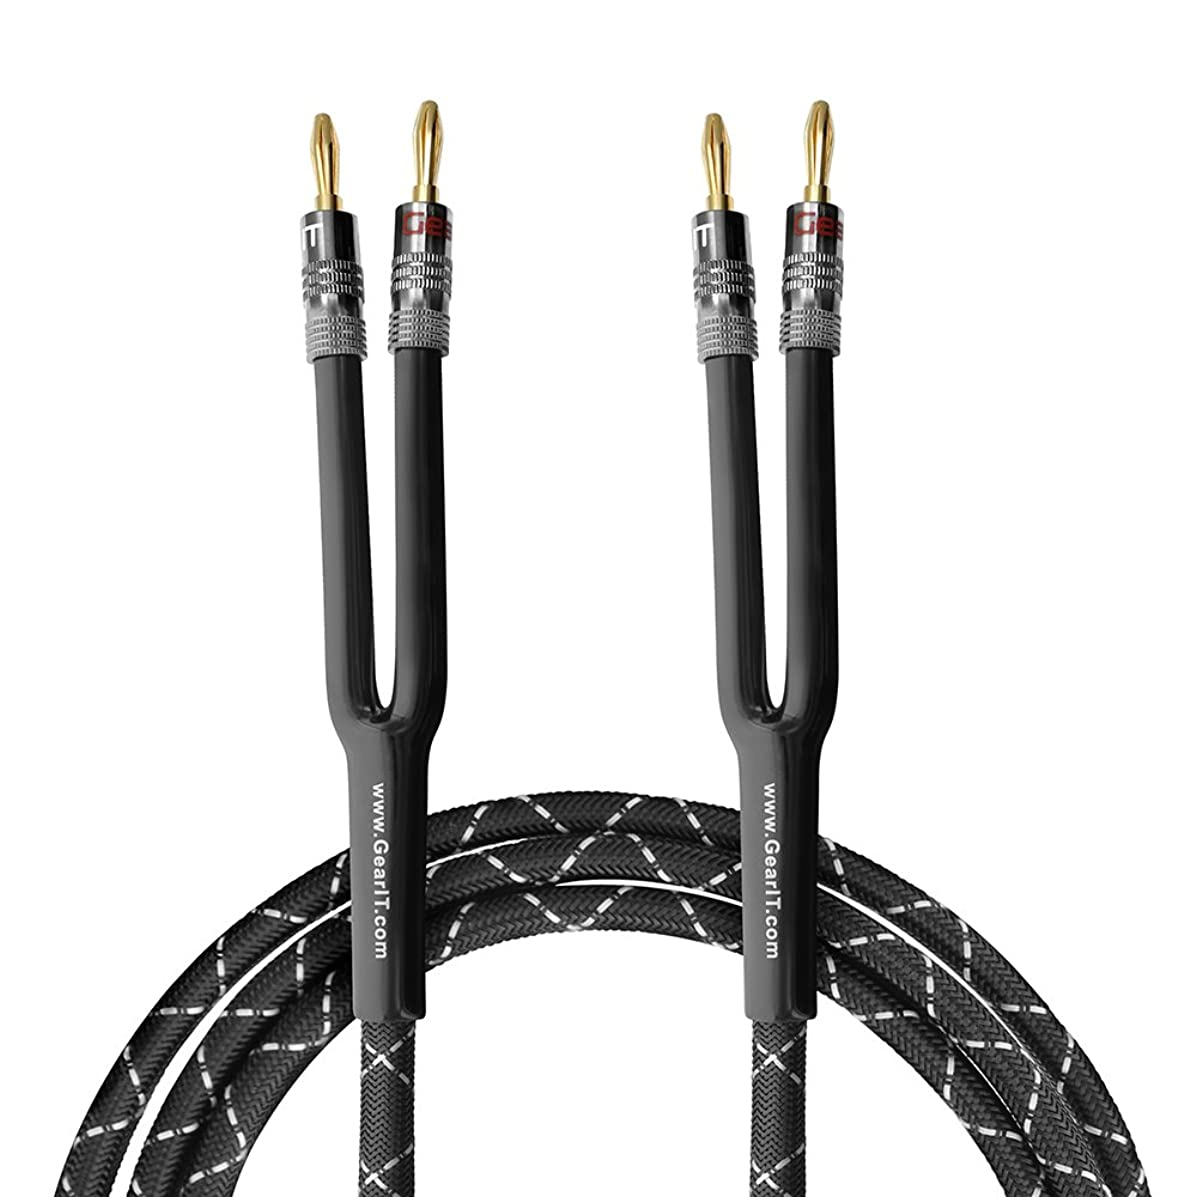 GearIT 12AWG Premium Heavy Duty Braided Speaker Wire (35 Feet) with Dual Gold Plated Banana Plug Tips - Oxygen-Free Copper (OFC) Construction, Black